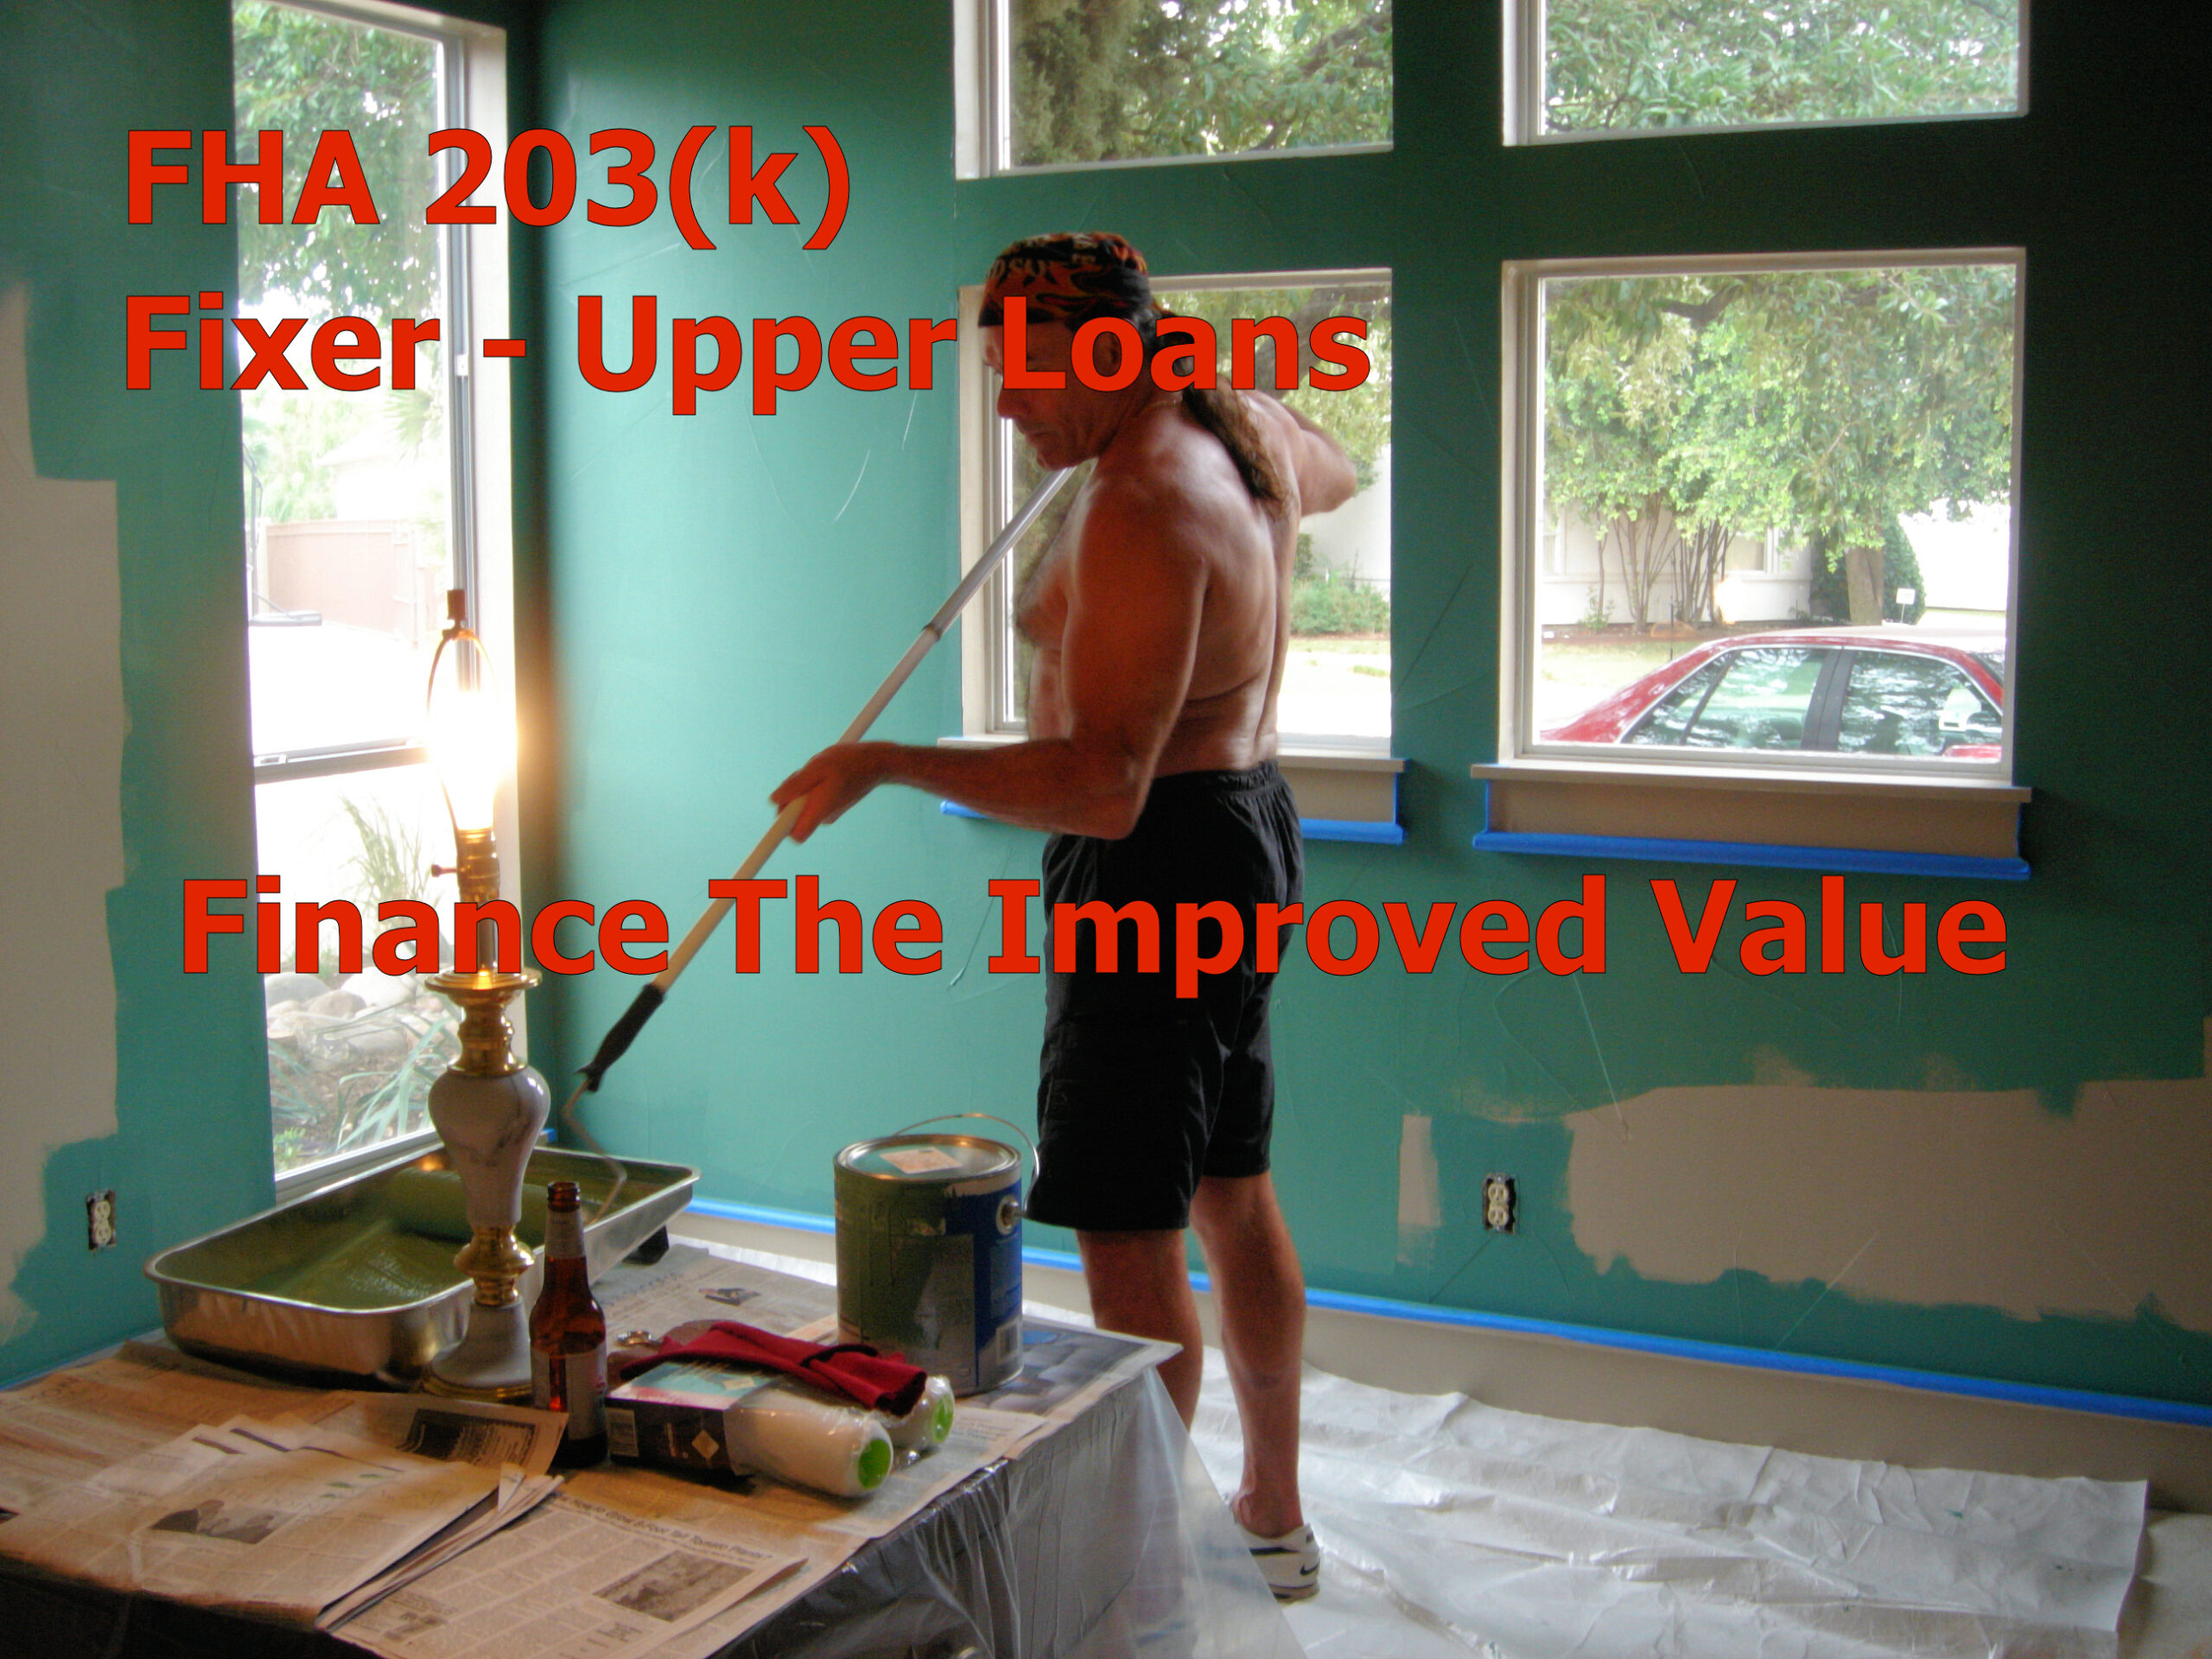 FHA 203(k) Loans for the Improved Value after repairs